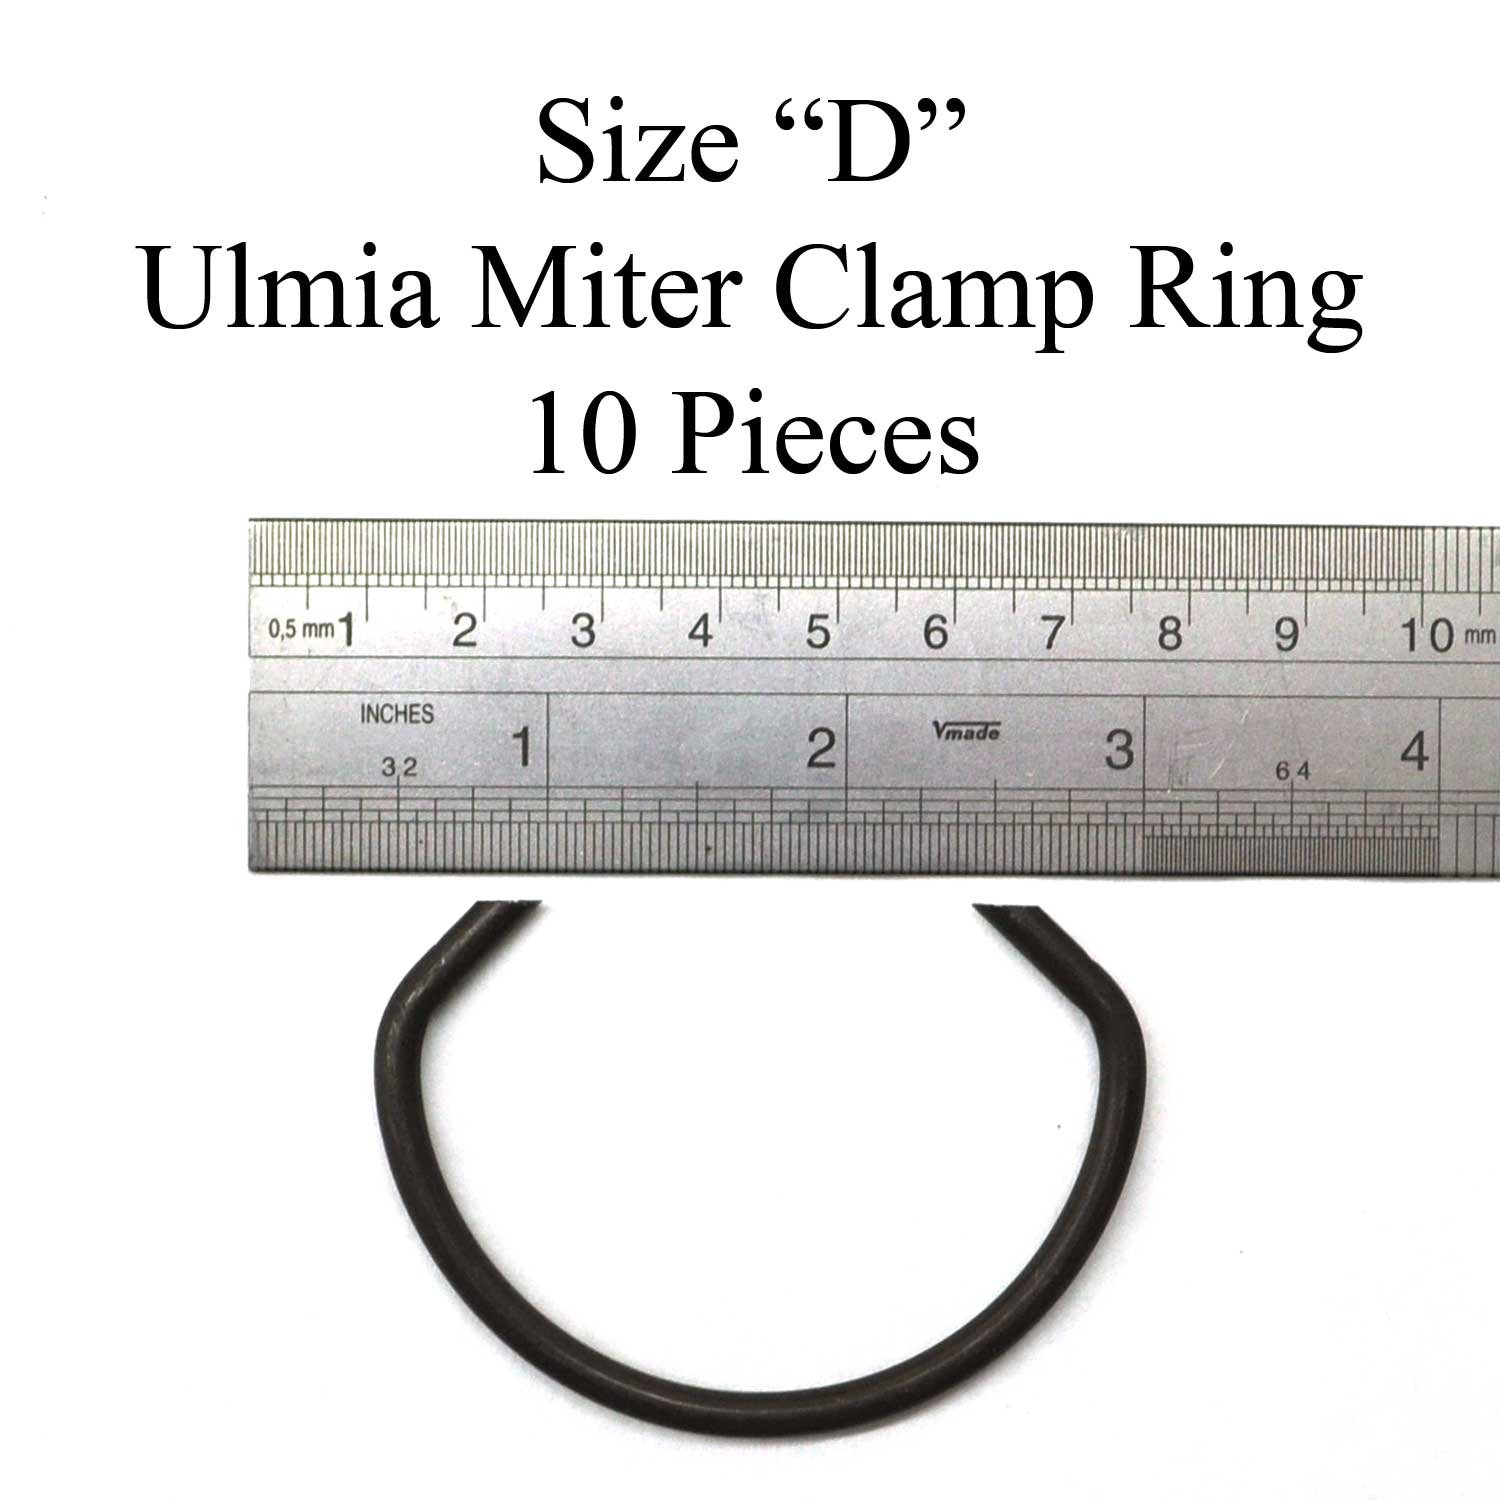 Ulmia ''D'' Size Miter Clamp Ring 10 Pack